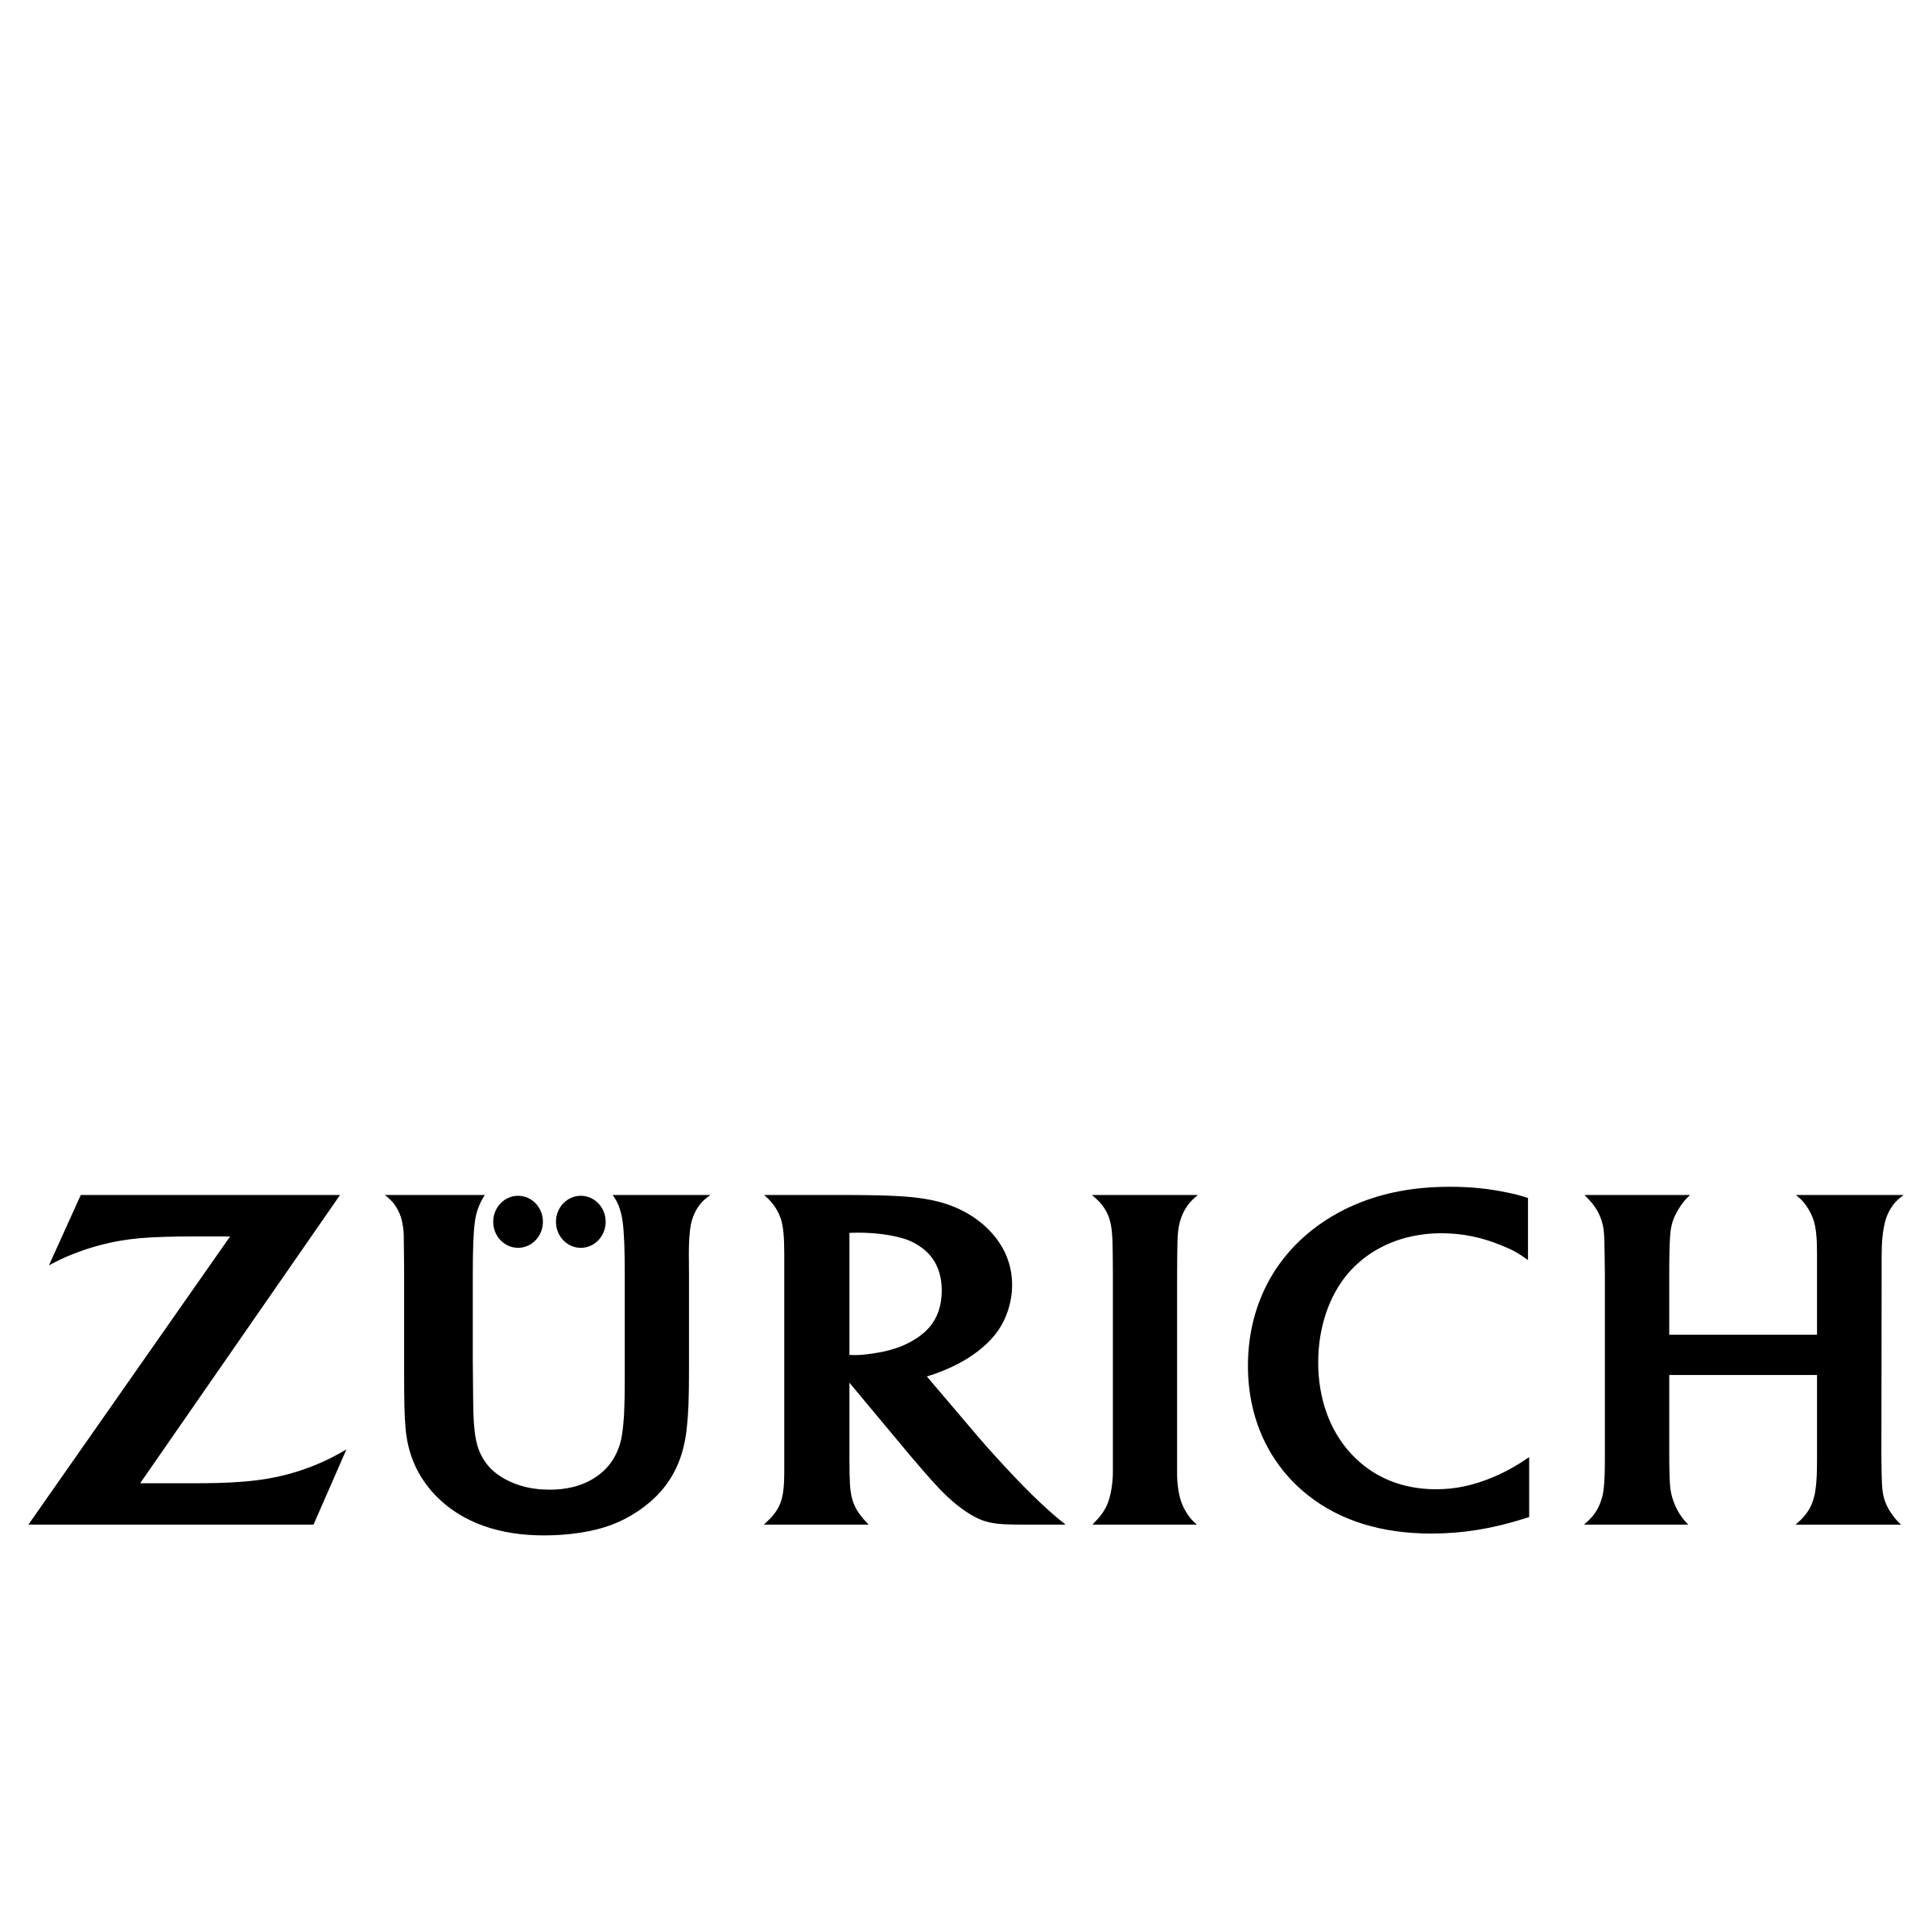 Zurich Logo PNG Transparent & SVG Vector.